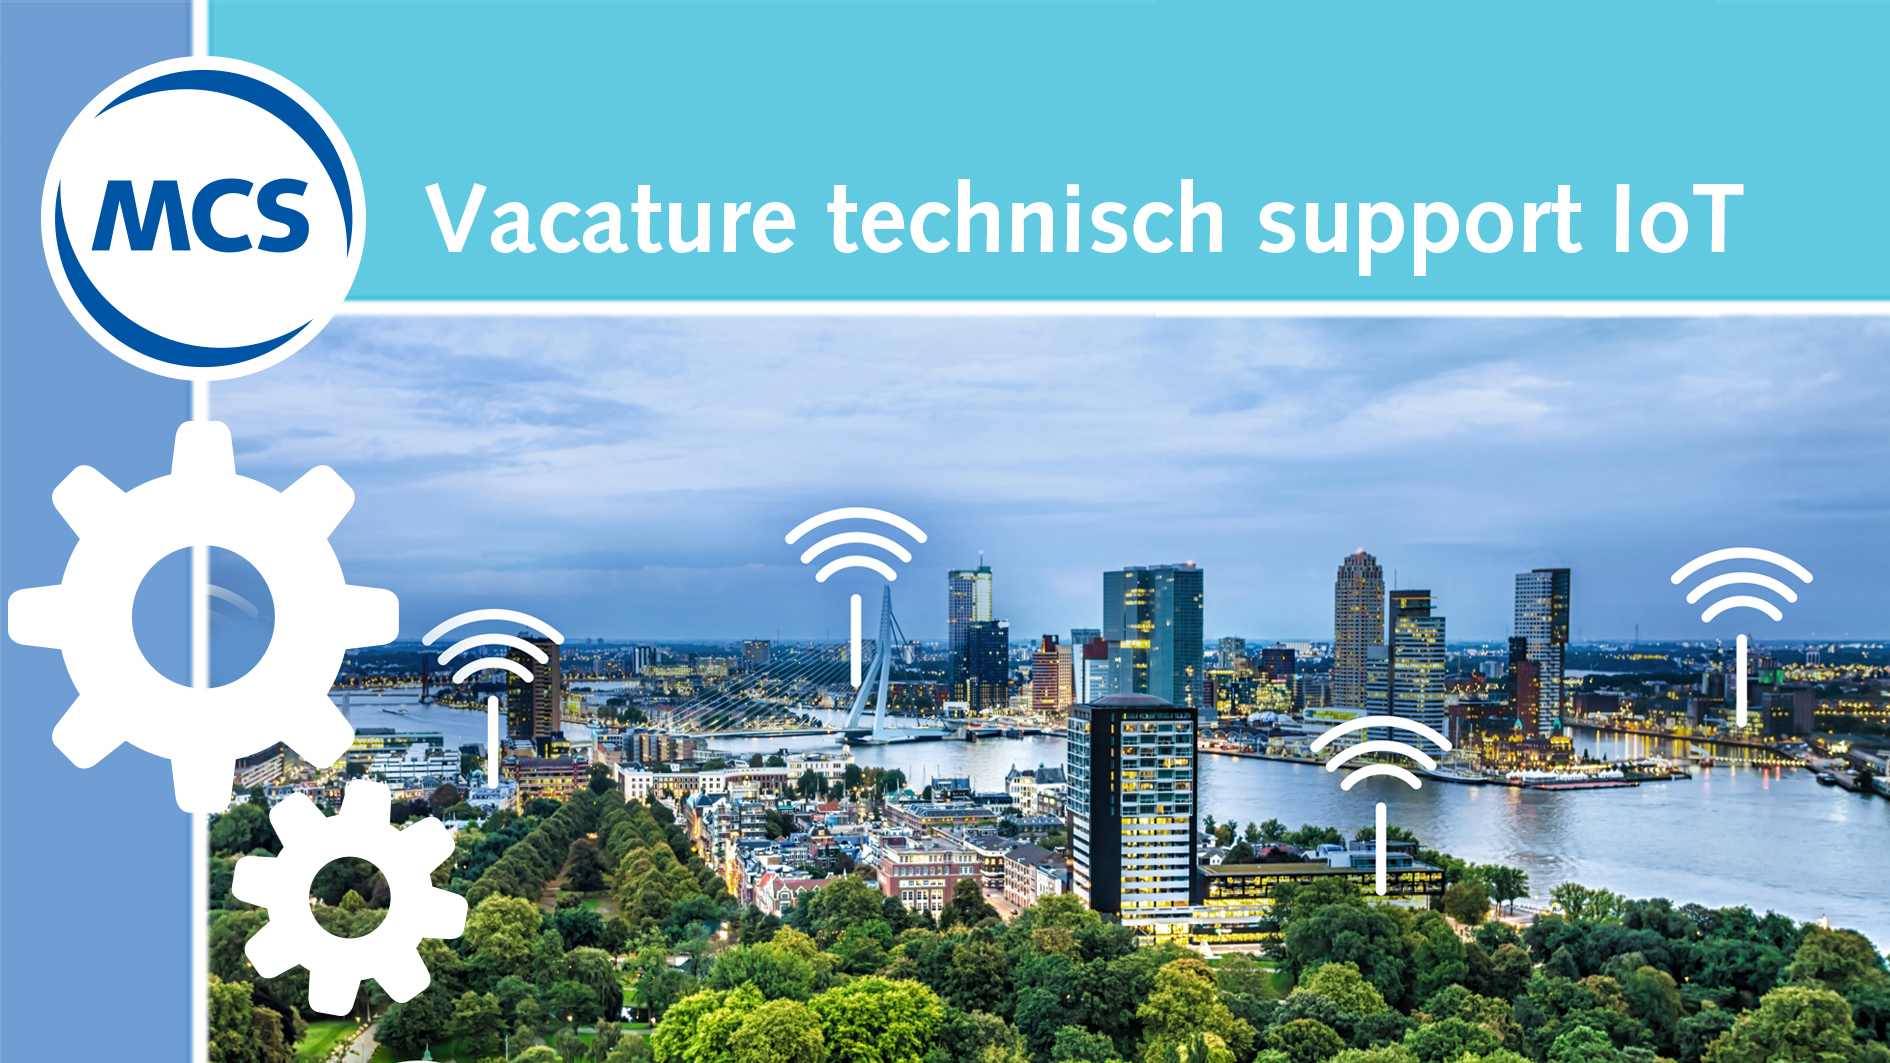 Vacature Technisch support medewerker IoT | Pushing the limits of communication technology | MCS